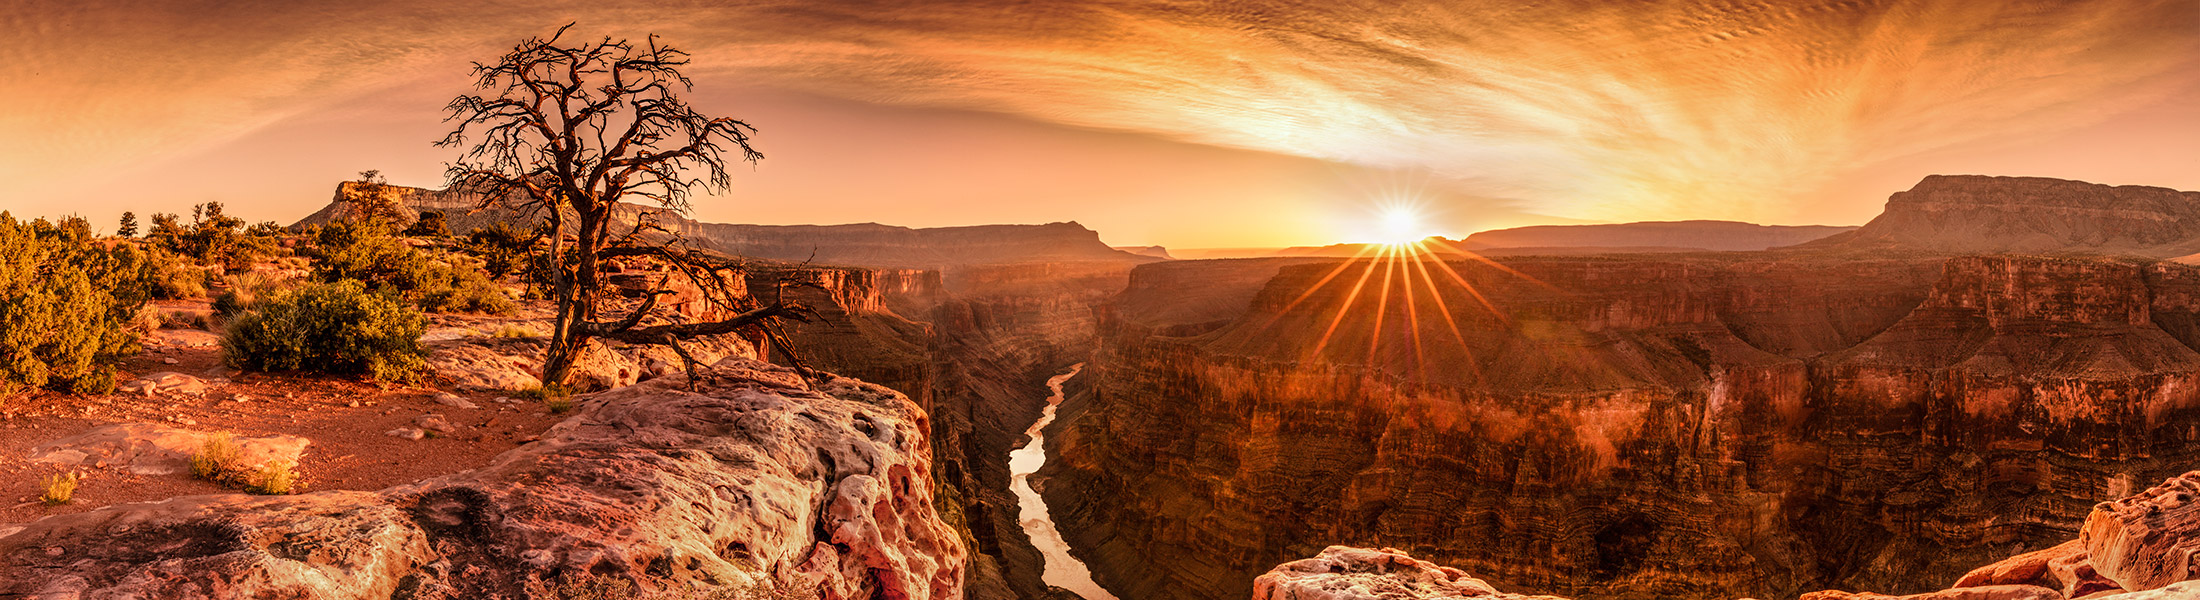 Grand Canyon at Sunset in North America